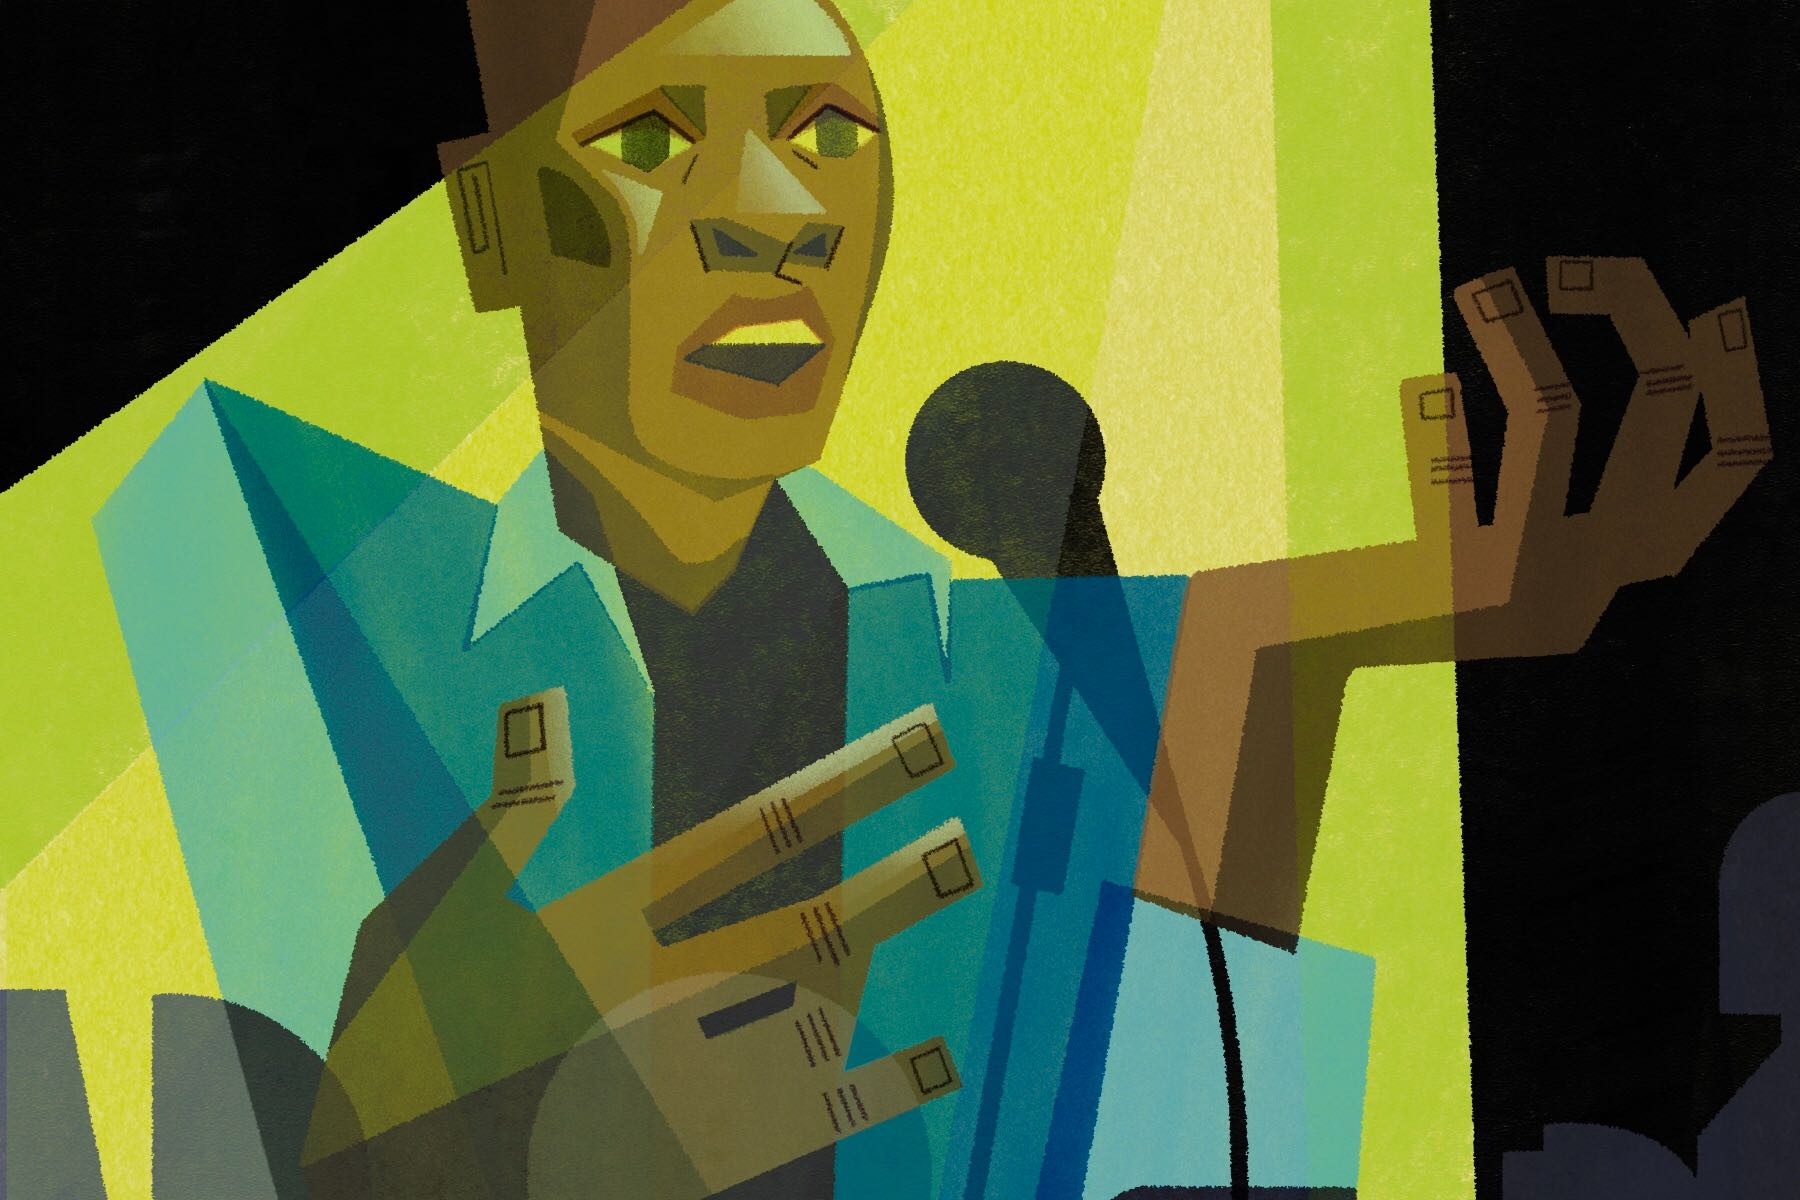 Illustration of a poet performing spoken word poetry